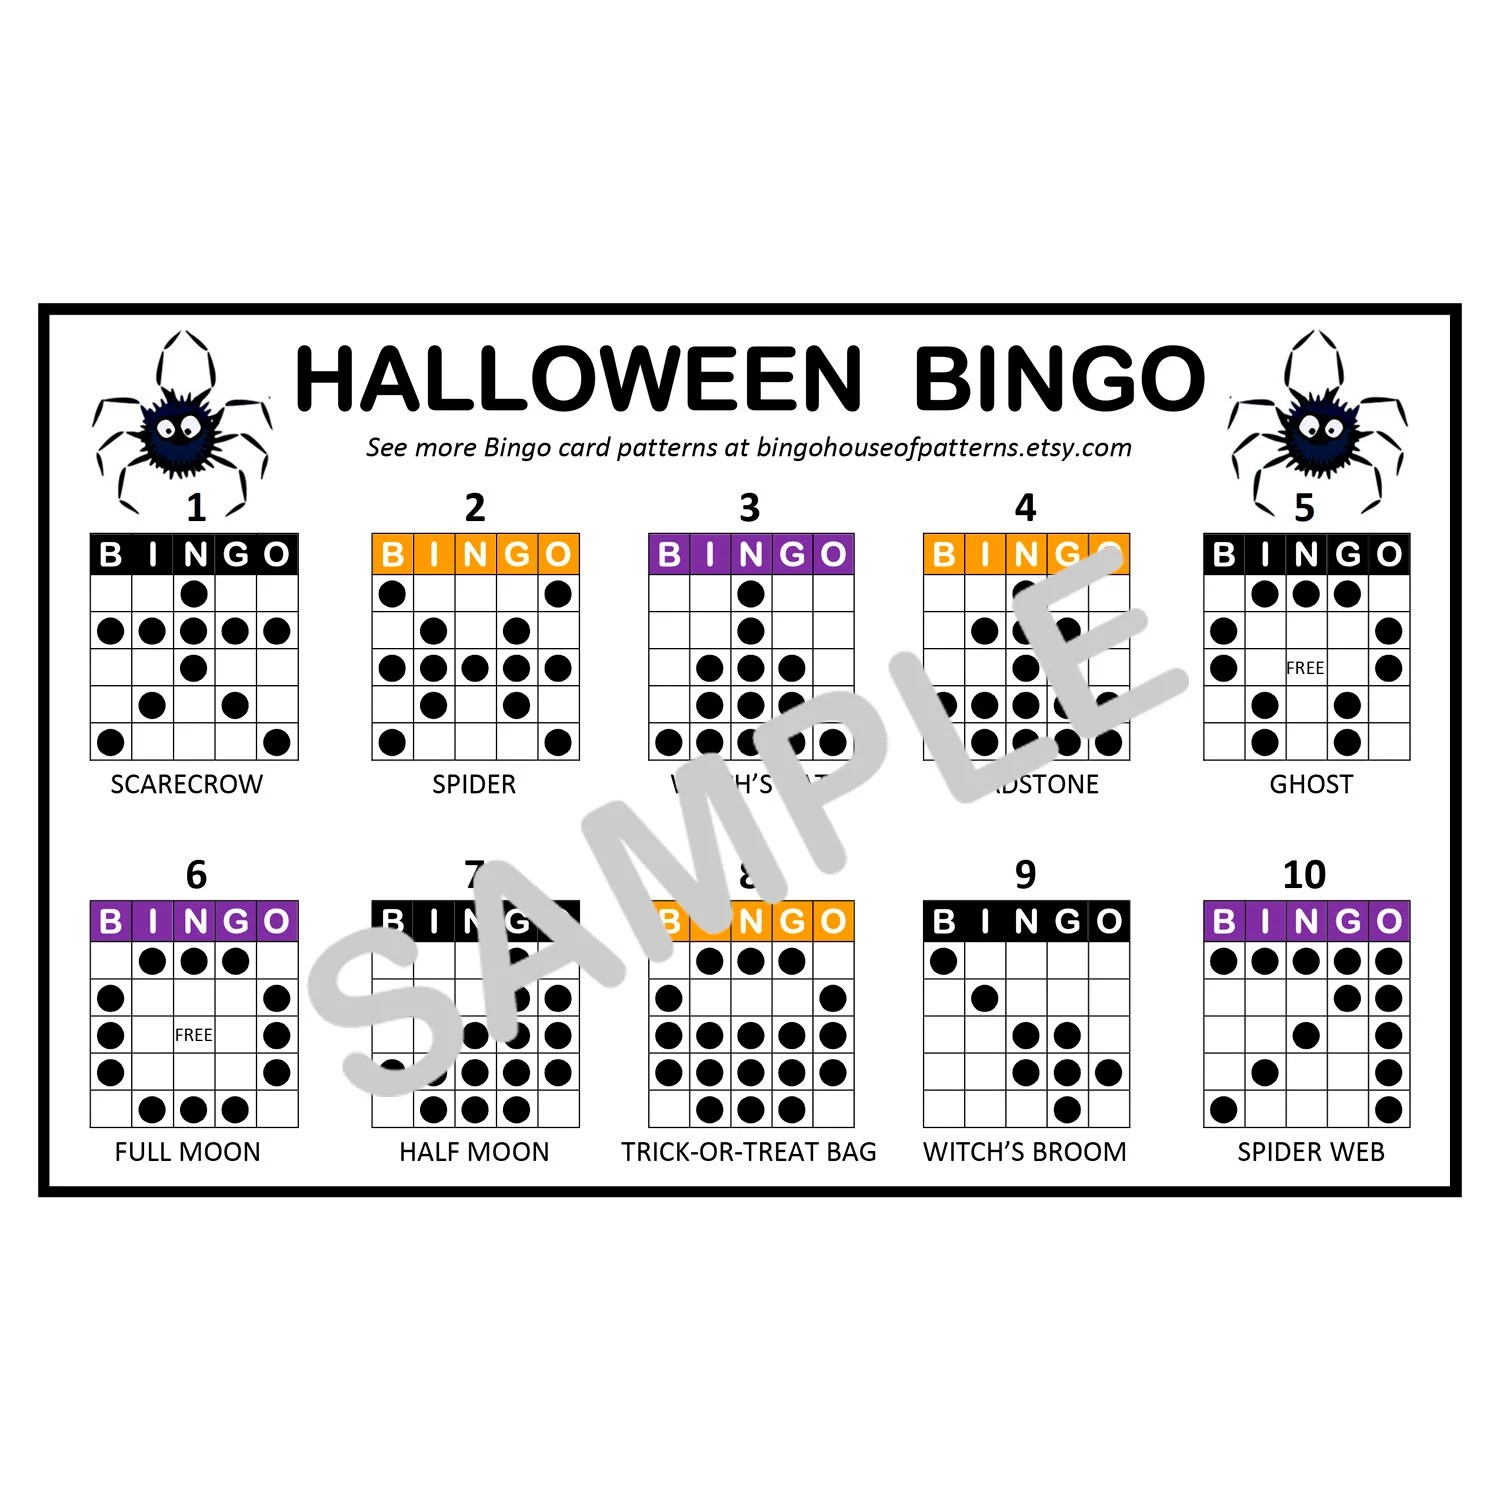 Halloween Holiday BINGO Card Patterns for Really Fun BINGO